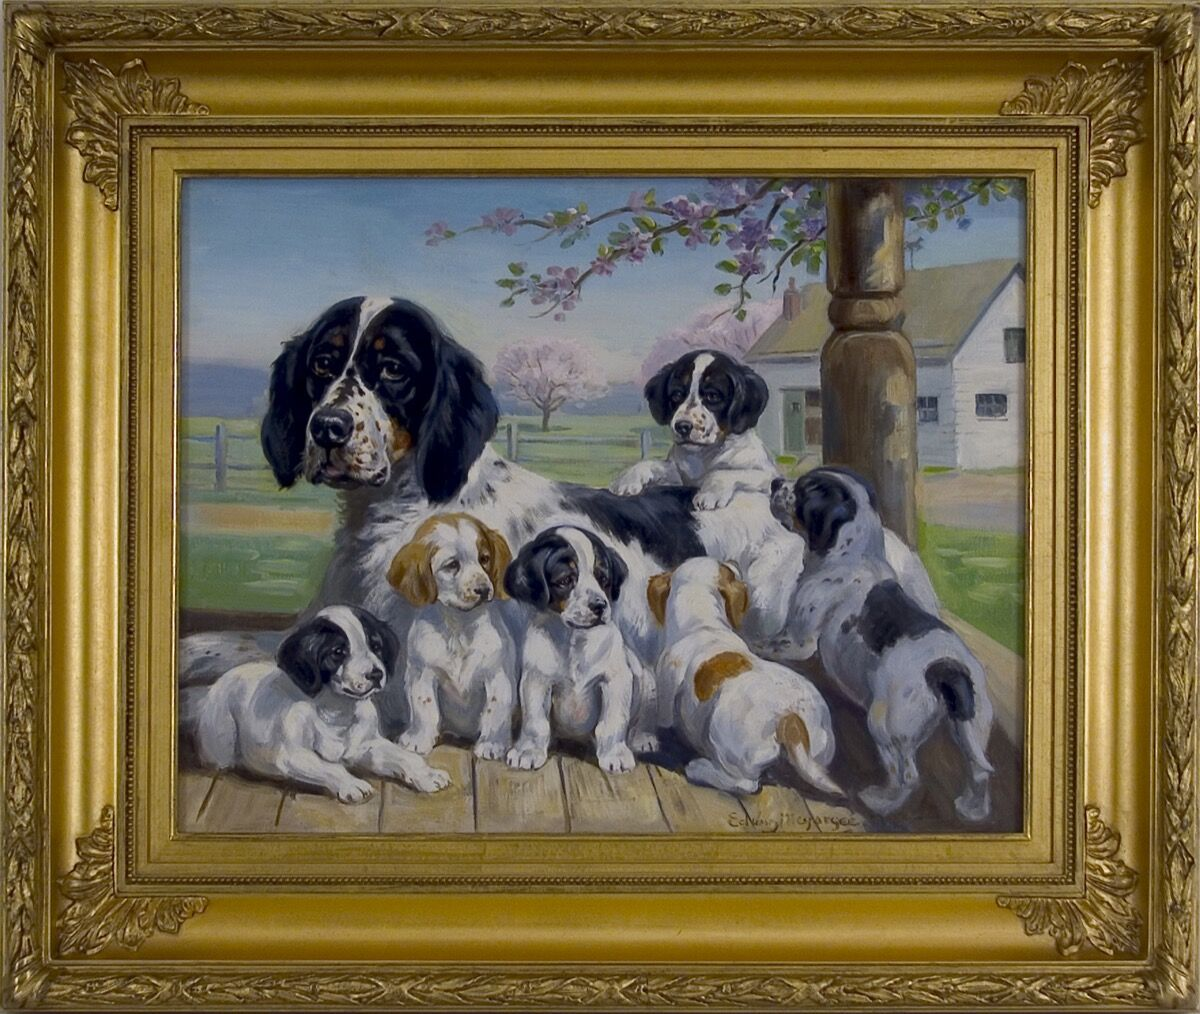 Edwin Megargee, Bess and Her Puppies. Courtesy of William Secord Gallery.